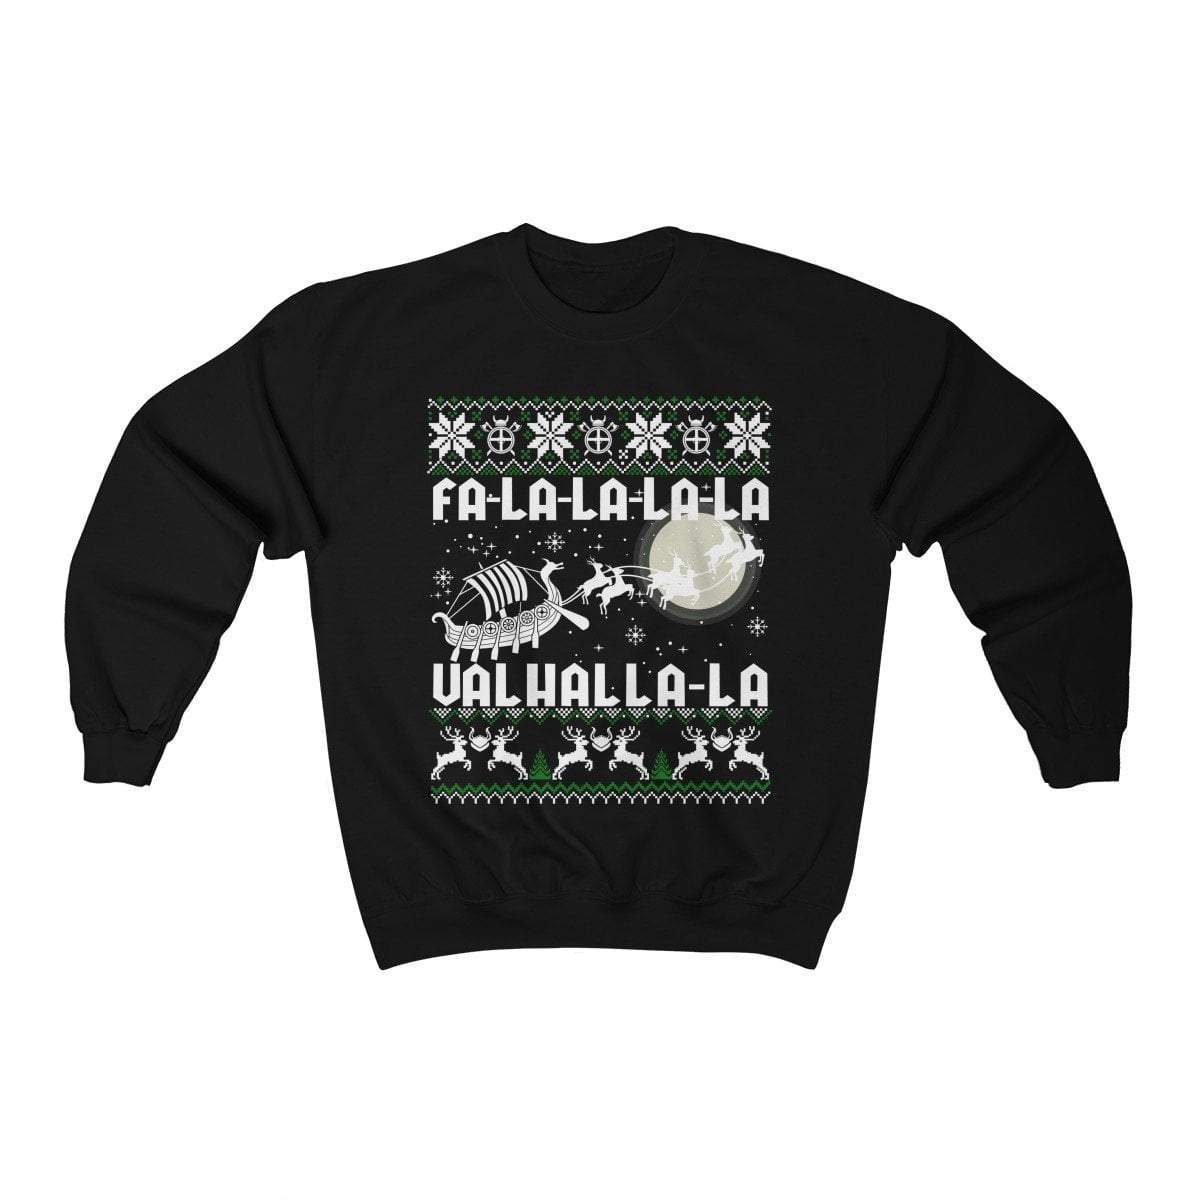 Unisex Viking Drakkar Fa-La-La Valhalla Christmas Holiday Sweater